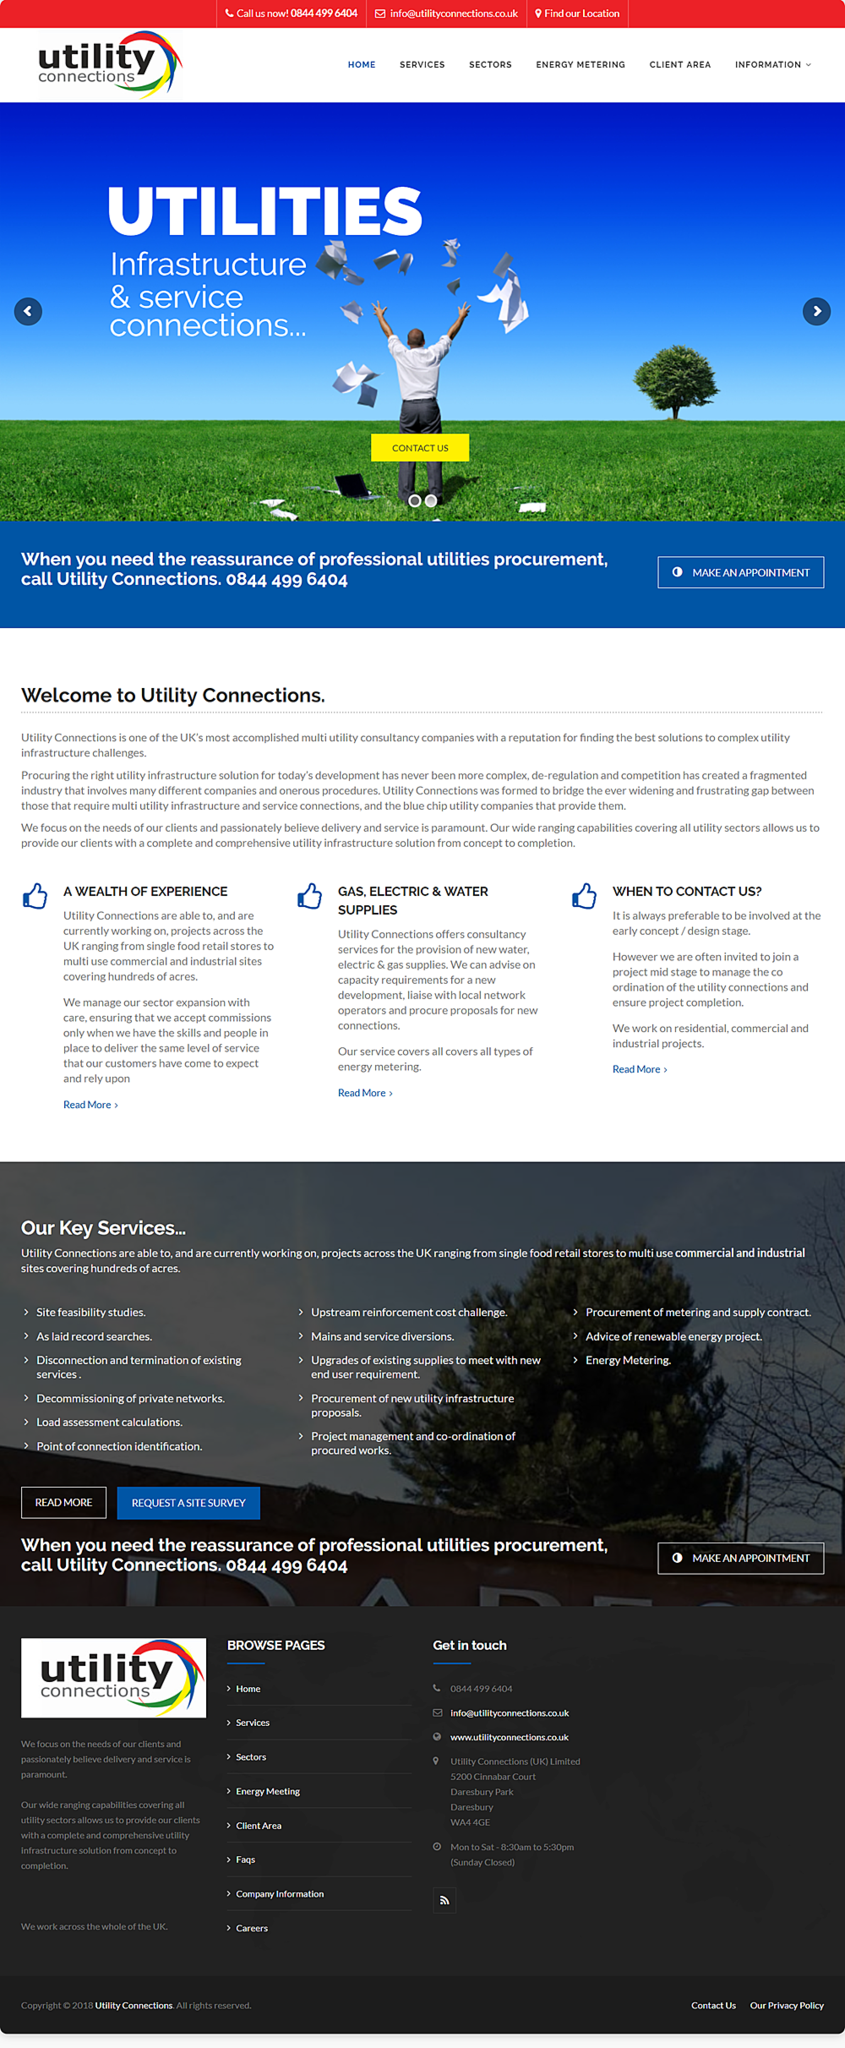 Website Design Stockport - Utilities Company